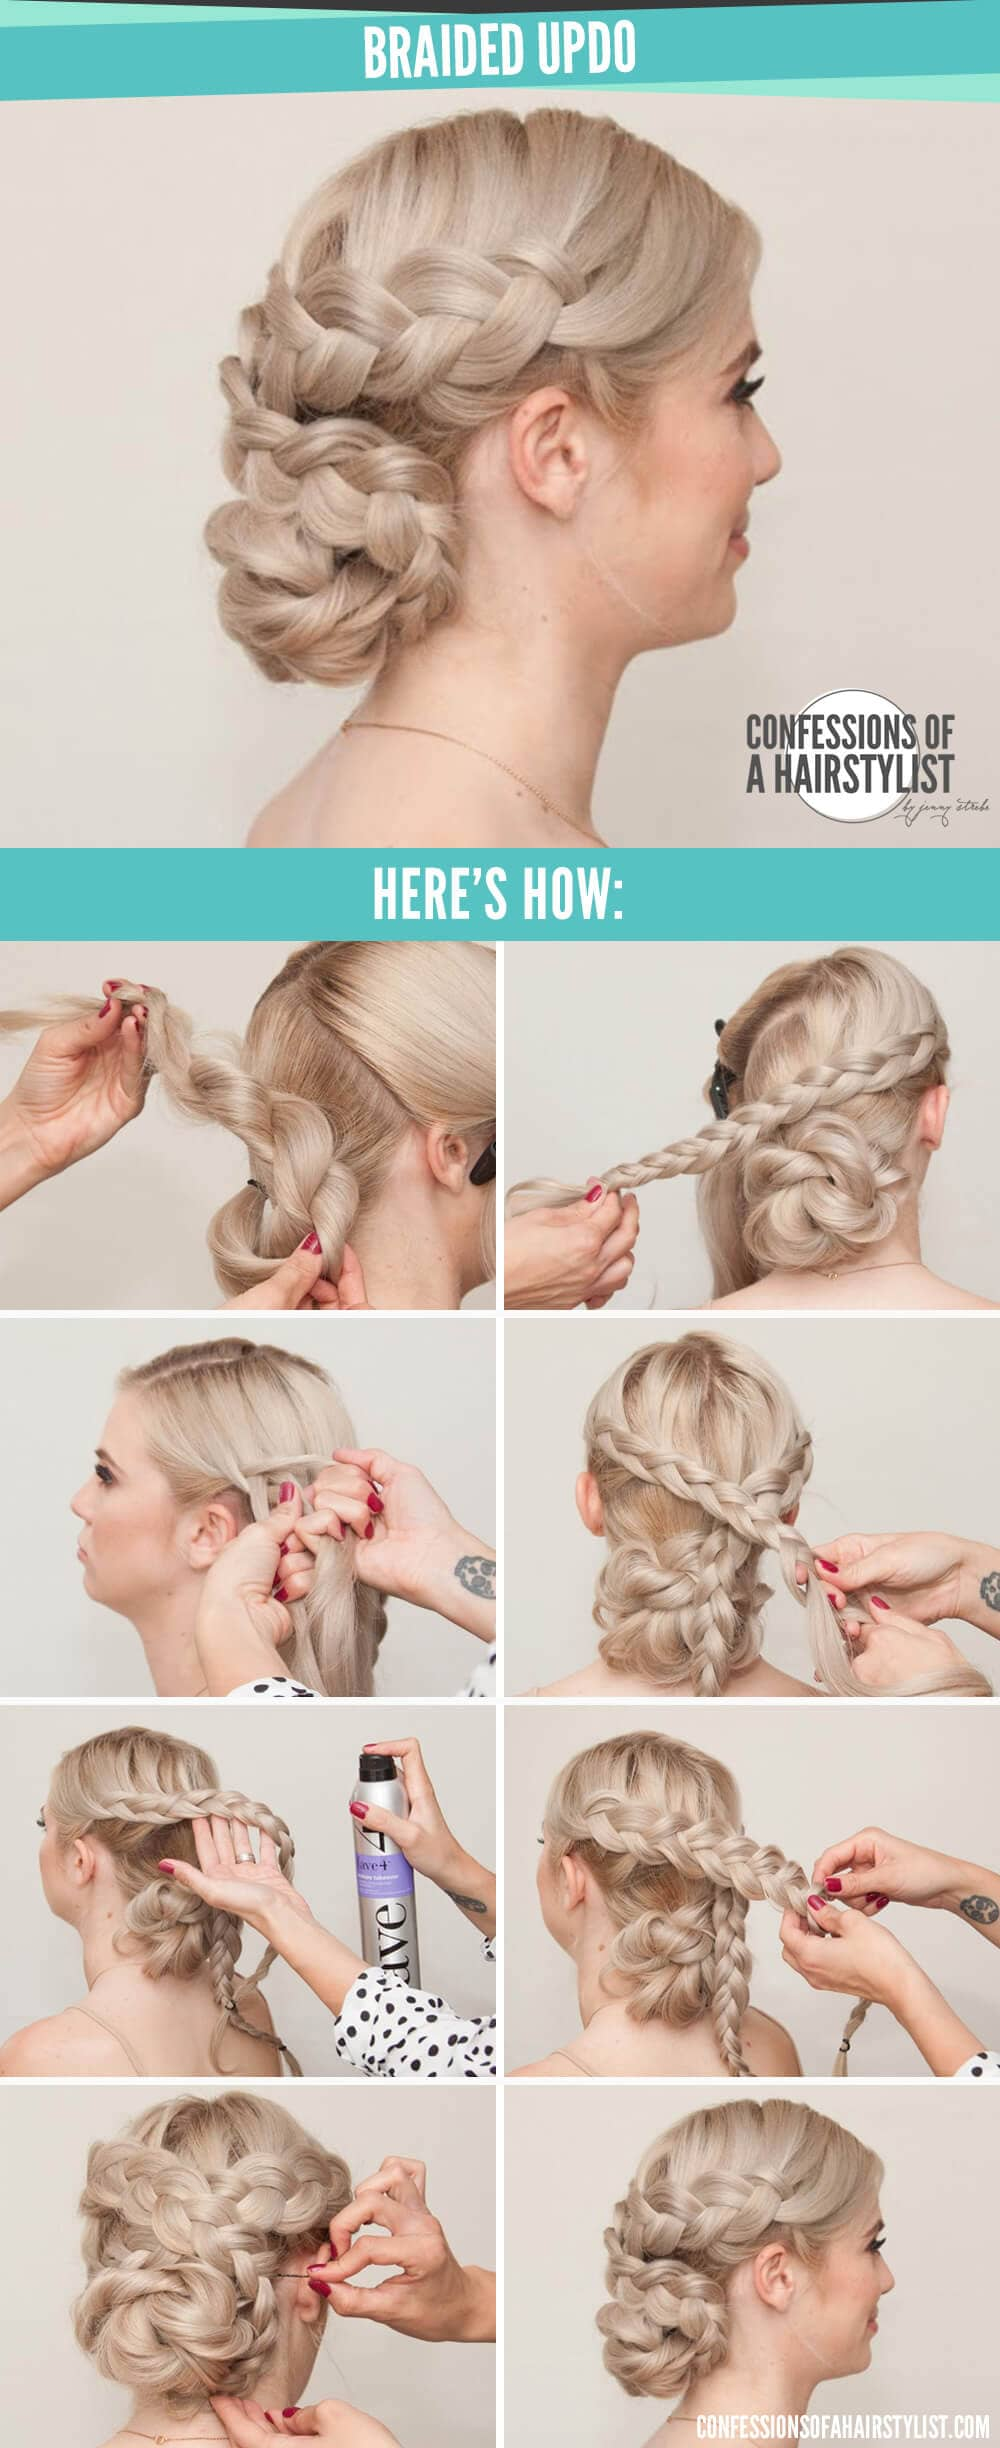 6 Criss Crossed Milkmaid Braid And Low Bun